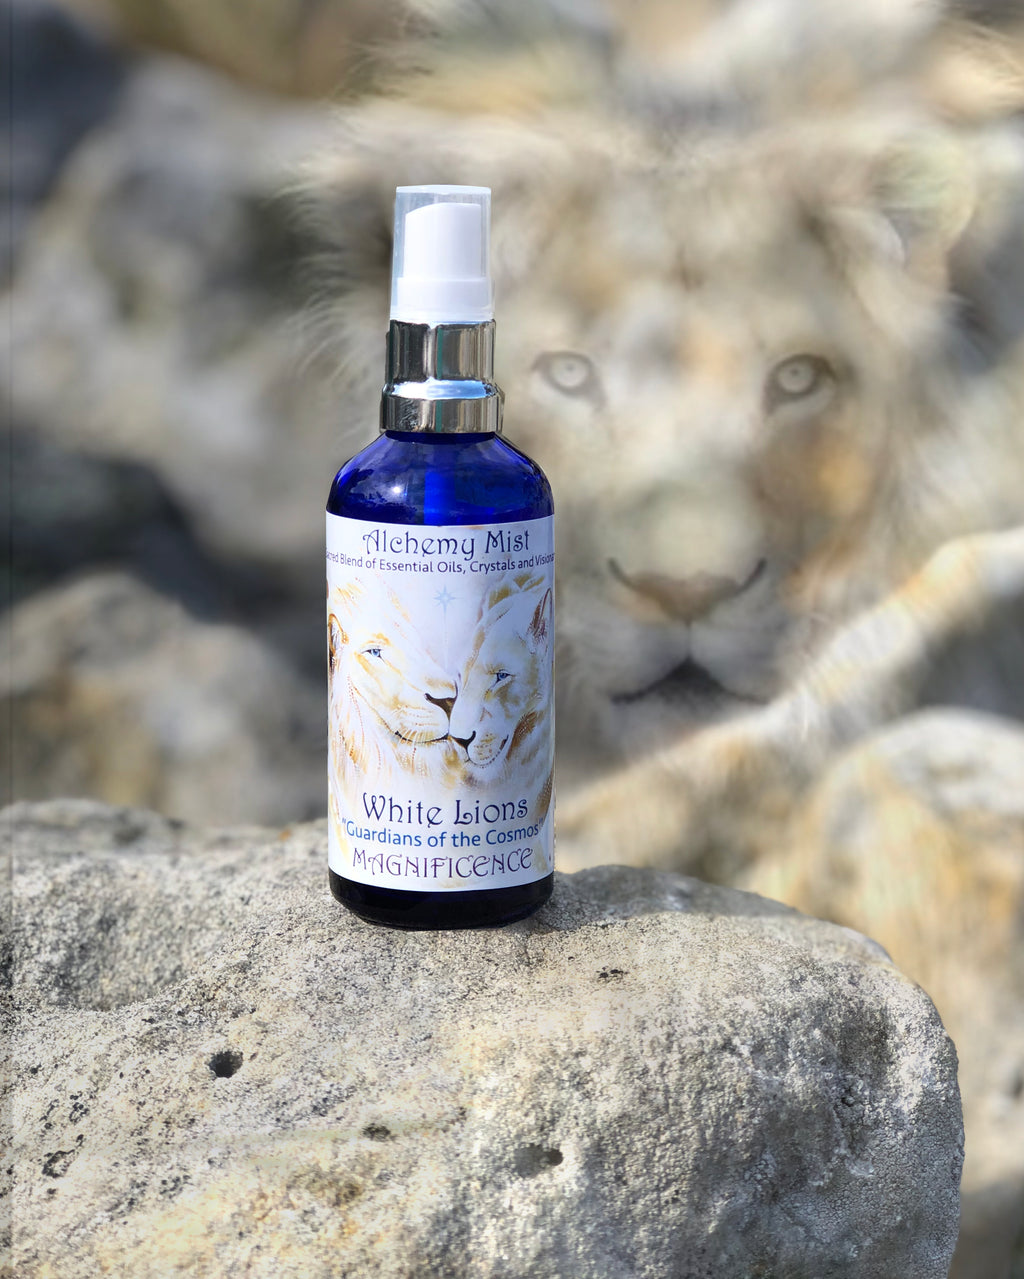 Alchemy mist used for cleansing the Aura and personal spaces at home and at work. Contains essential oils and crystal essences. Artisan crafted in Byron Bay.